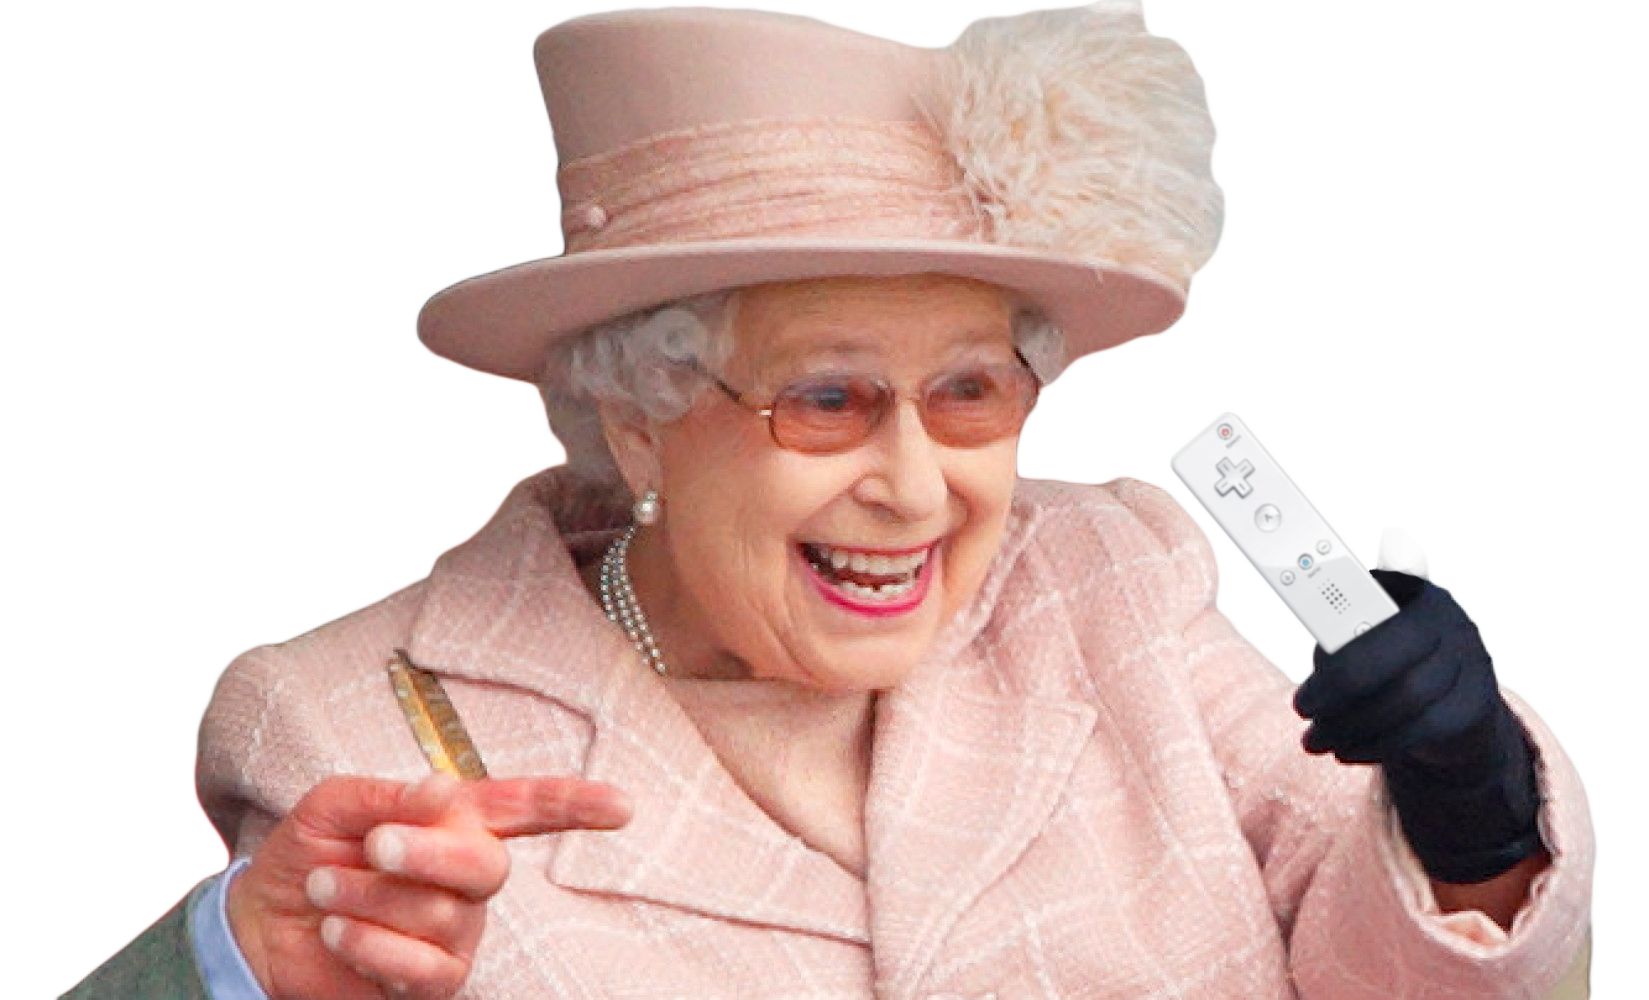 Queen Elizabeth Cartoon PNG - 63457